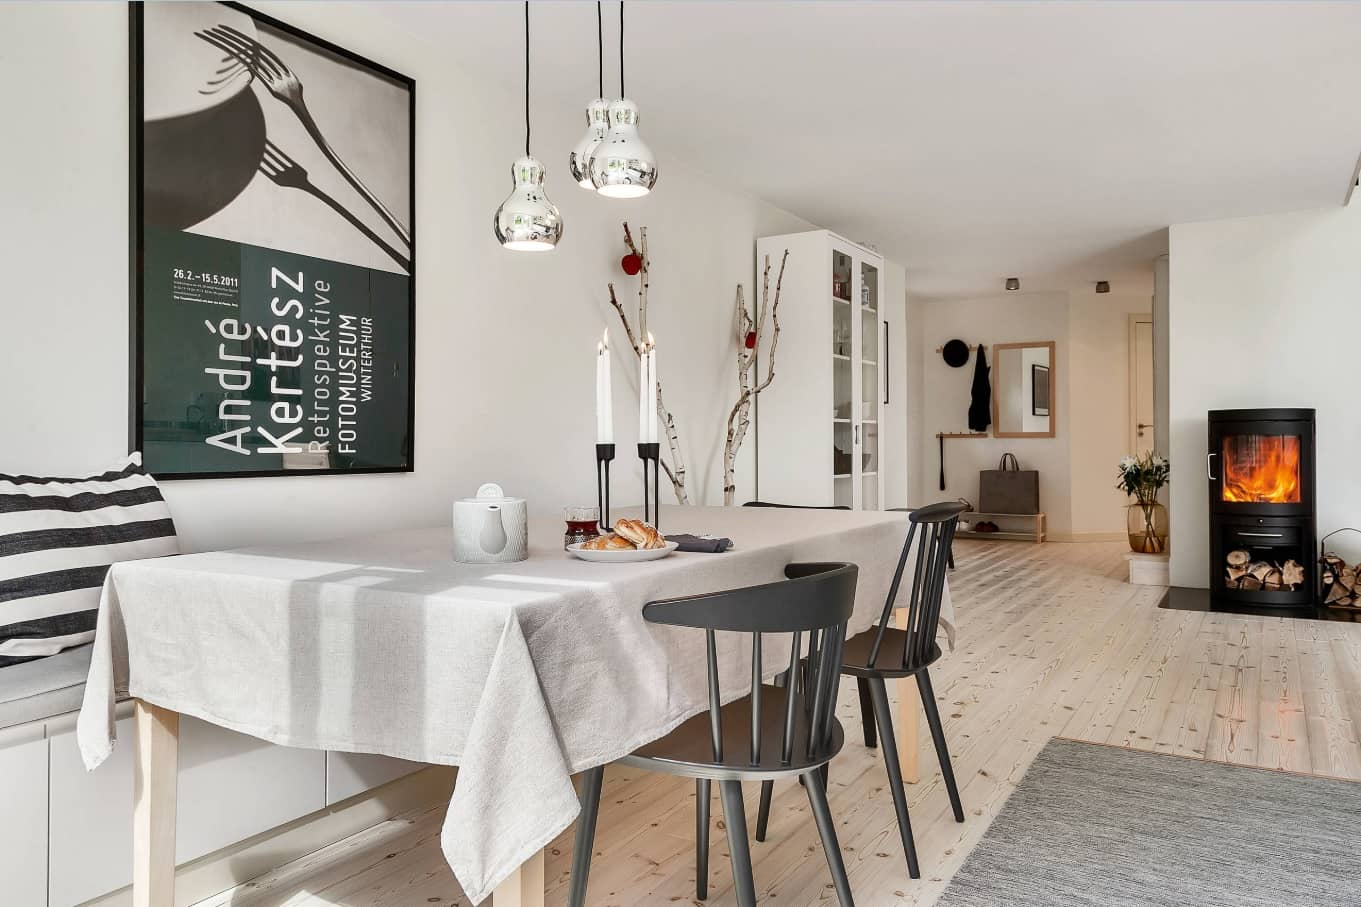 Nordic Interior Design Examples in Real Homes Photos. Scandinavian minimalistic approach in freshly looking dining room